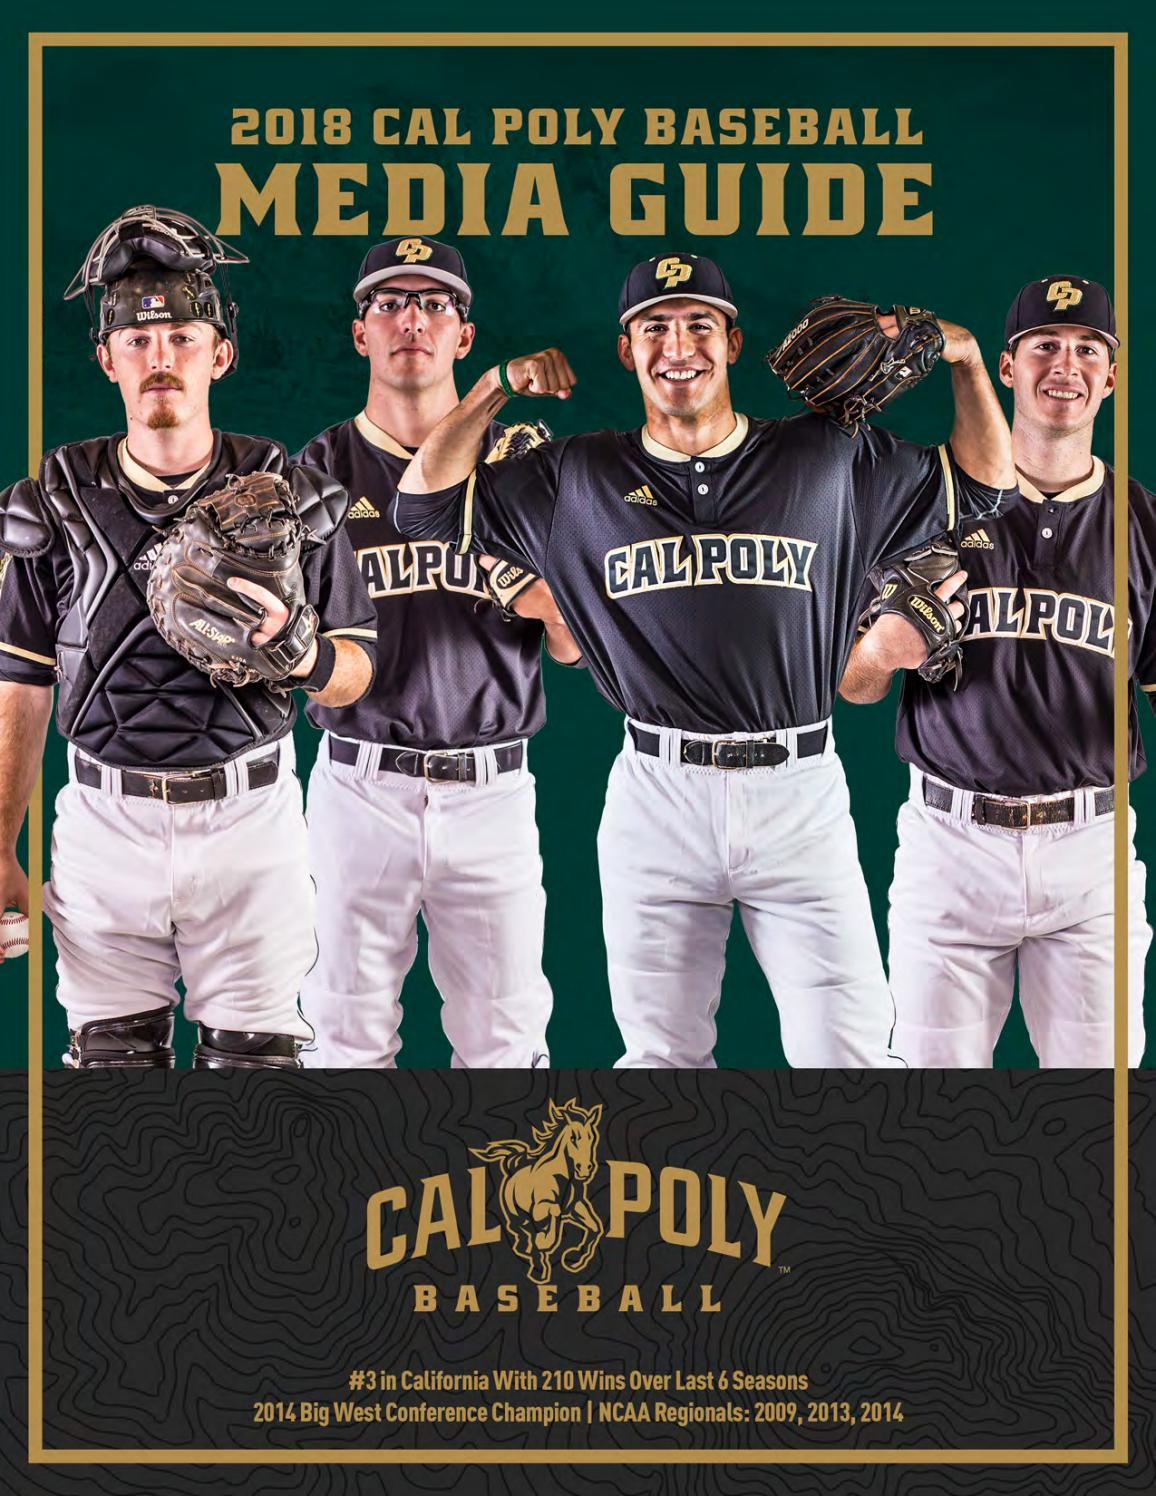 c763704f6c6 2018 Cal Poly Baseball Team Information Guide by Cal Poly Athletics - issuu